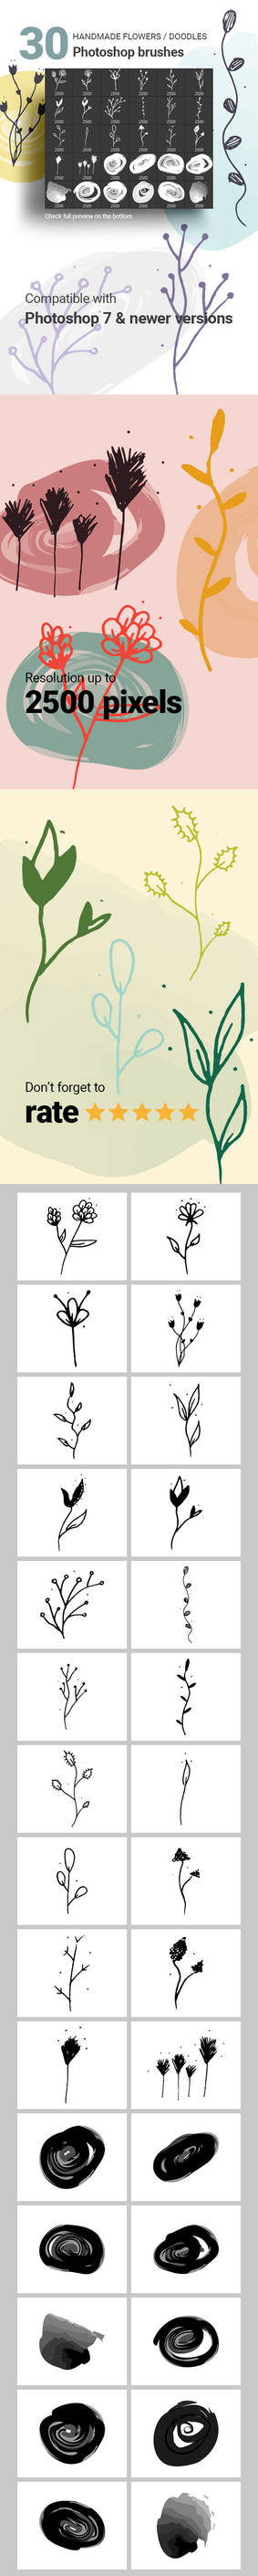 Hand-drawn Flowers Vector Doodle Photoshop Brushes